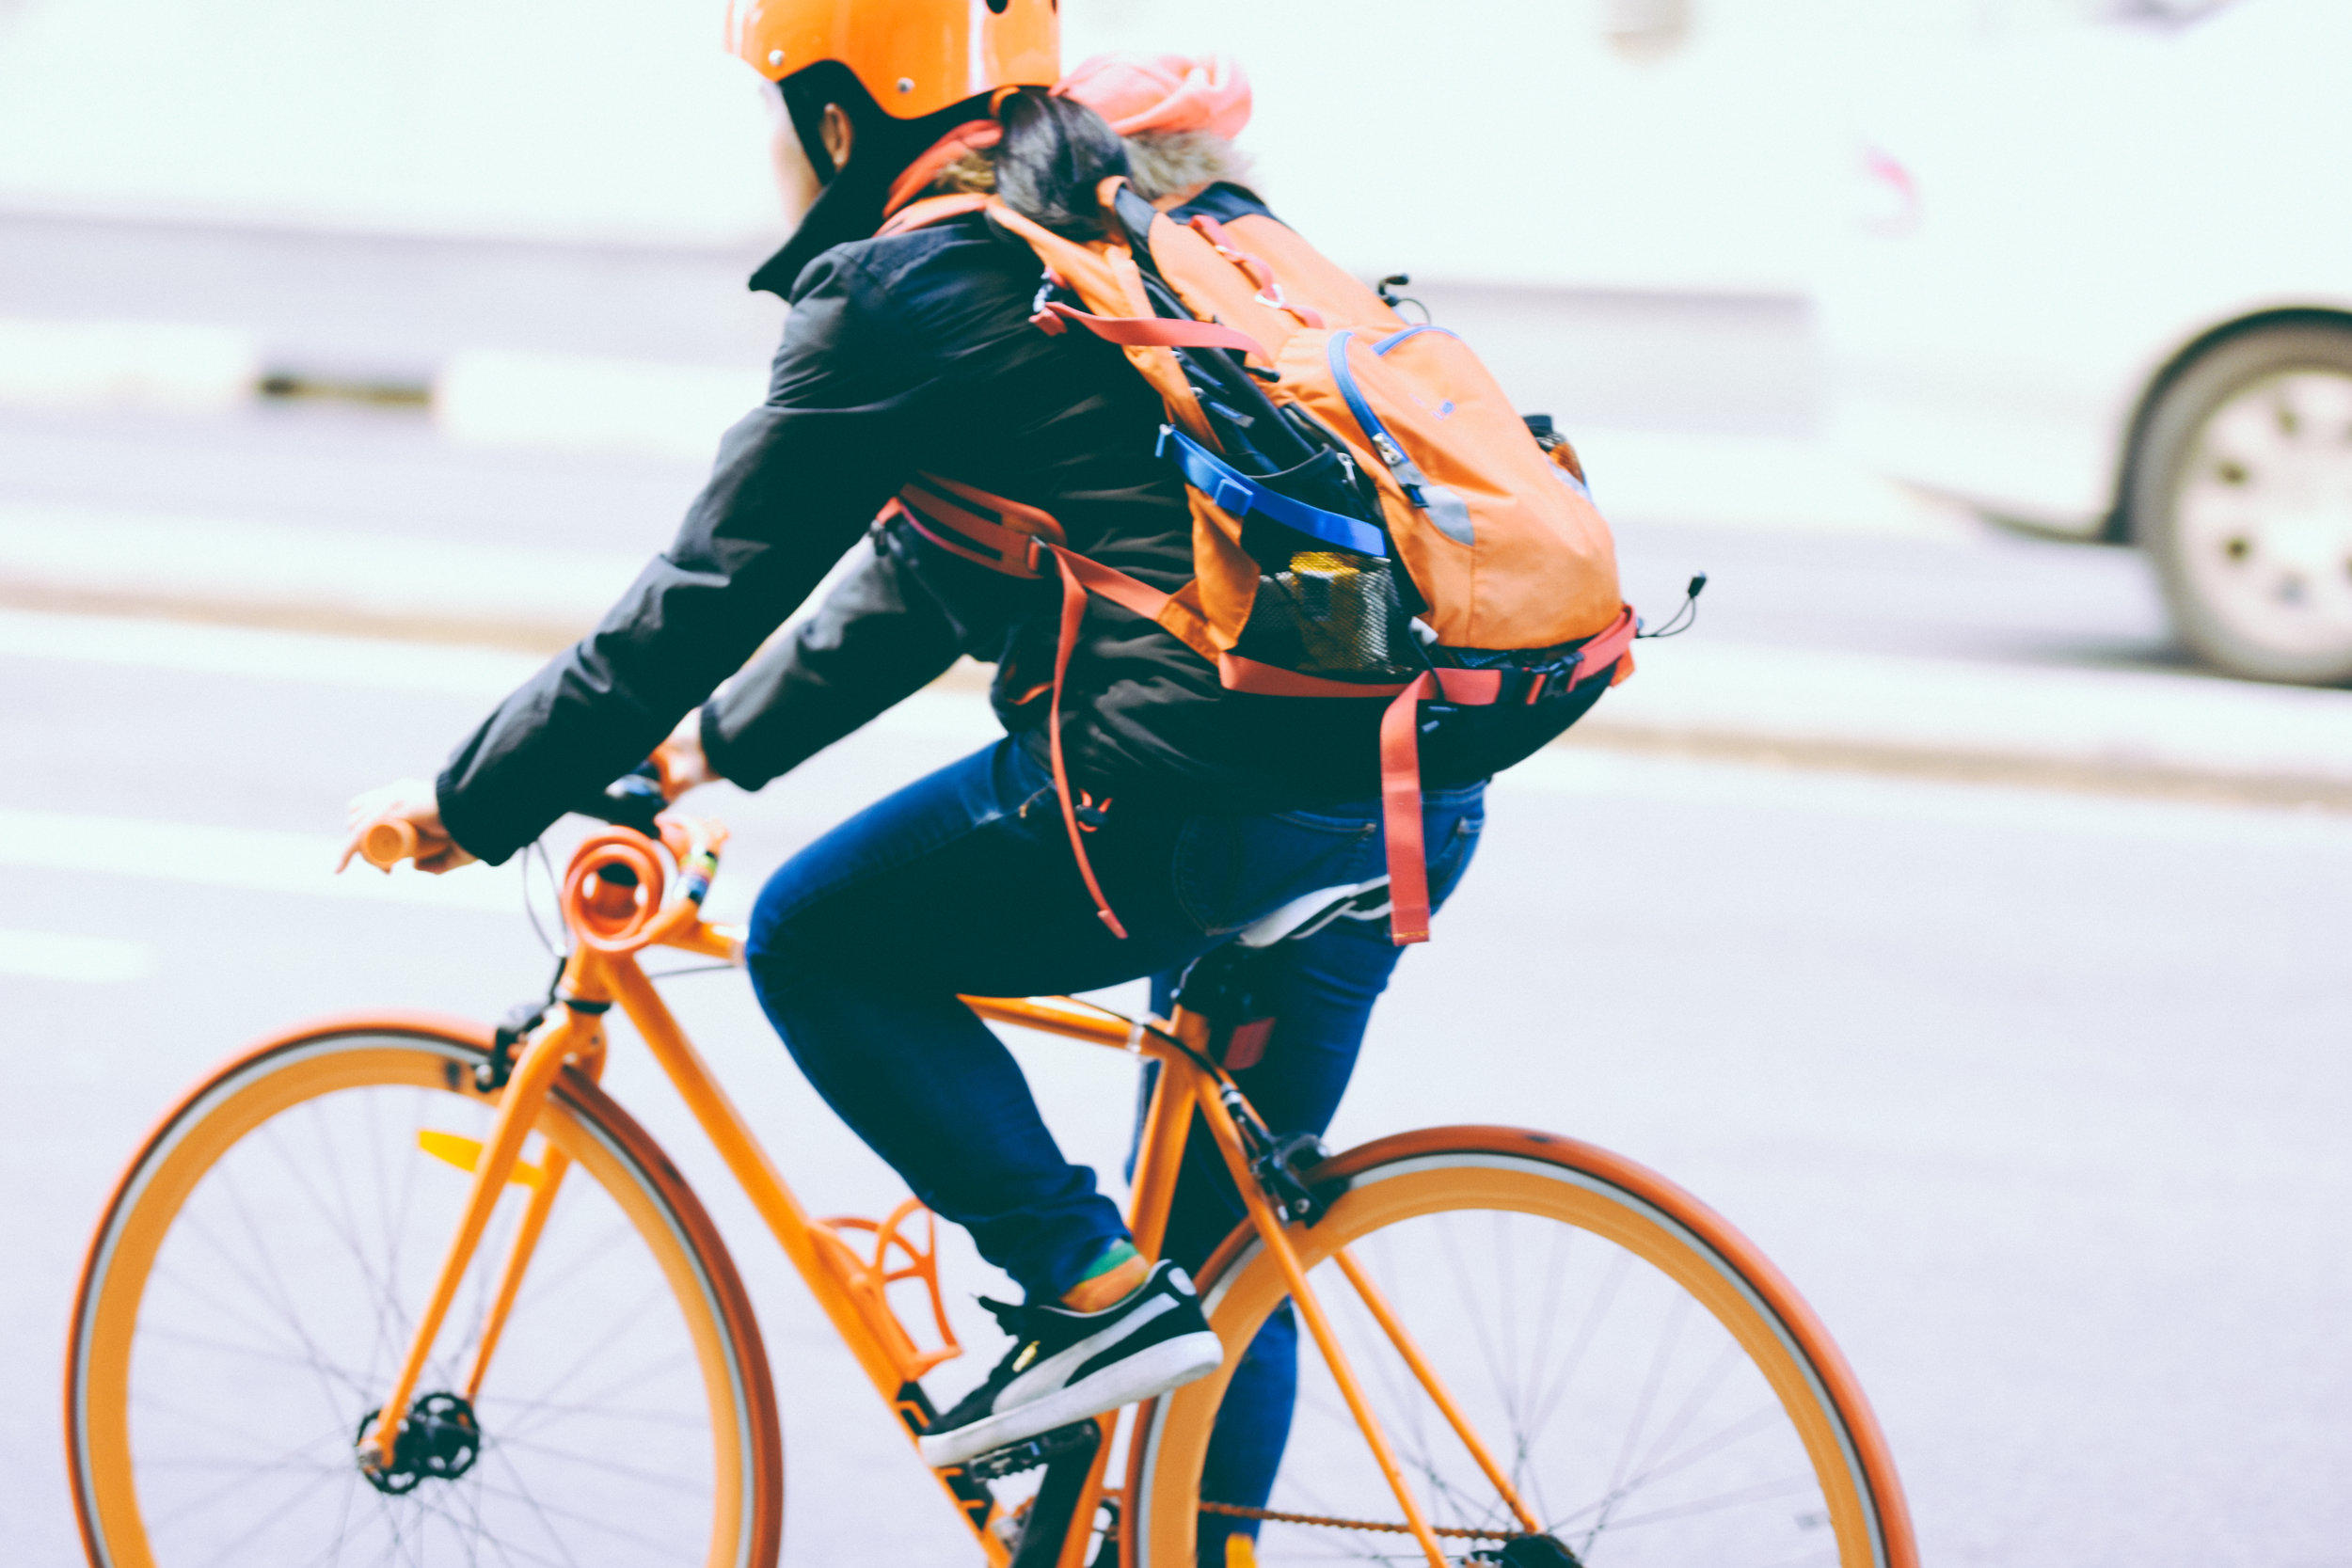 1996 - From 1996 to 1999, BEST operated the first Bike to Work Week Campaigns, to promote cycling and build awareness.